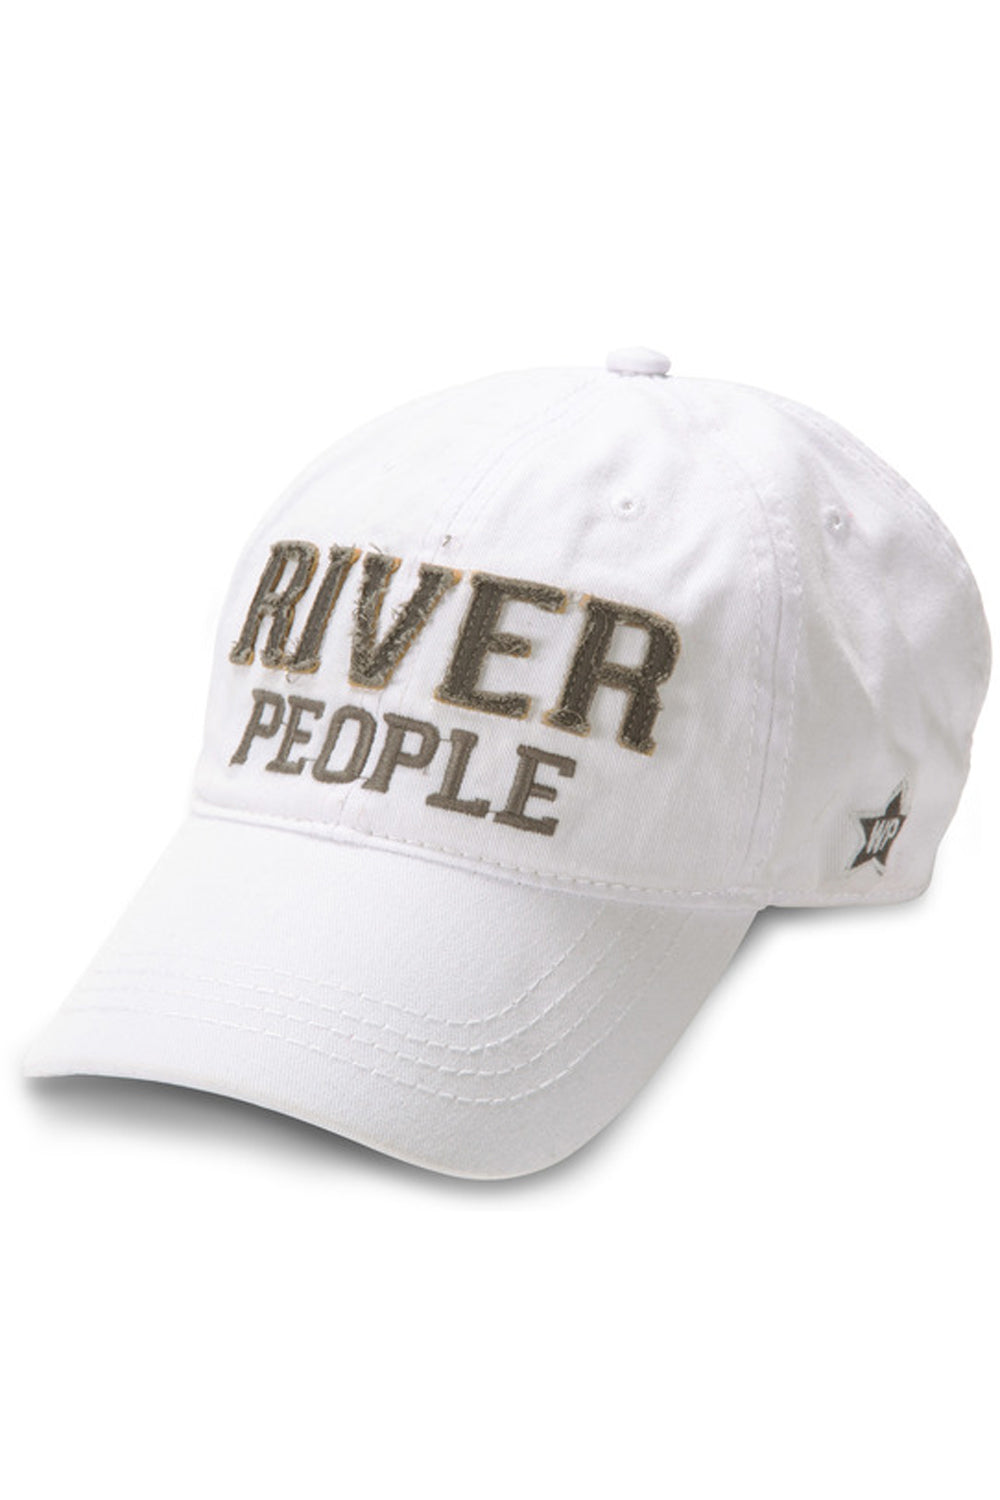 Adjustable Hat - River People